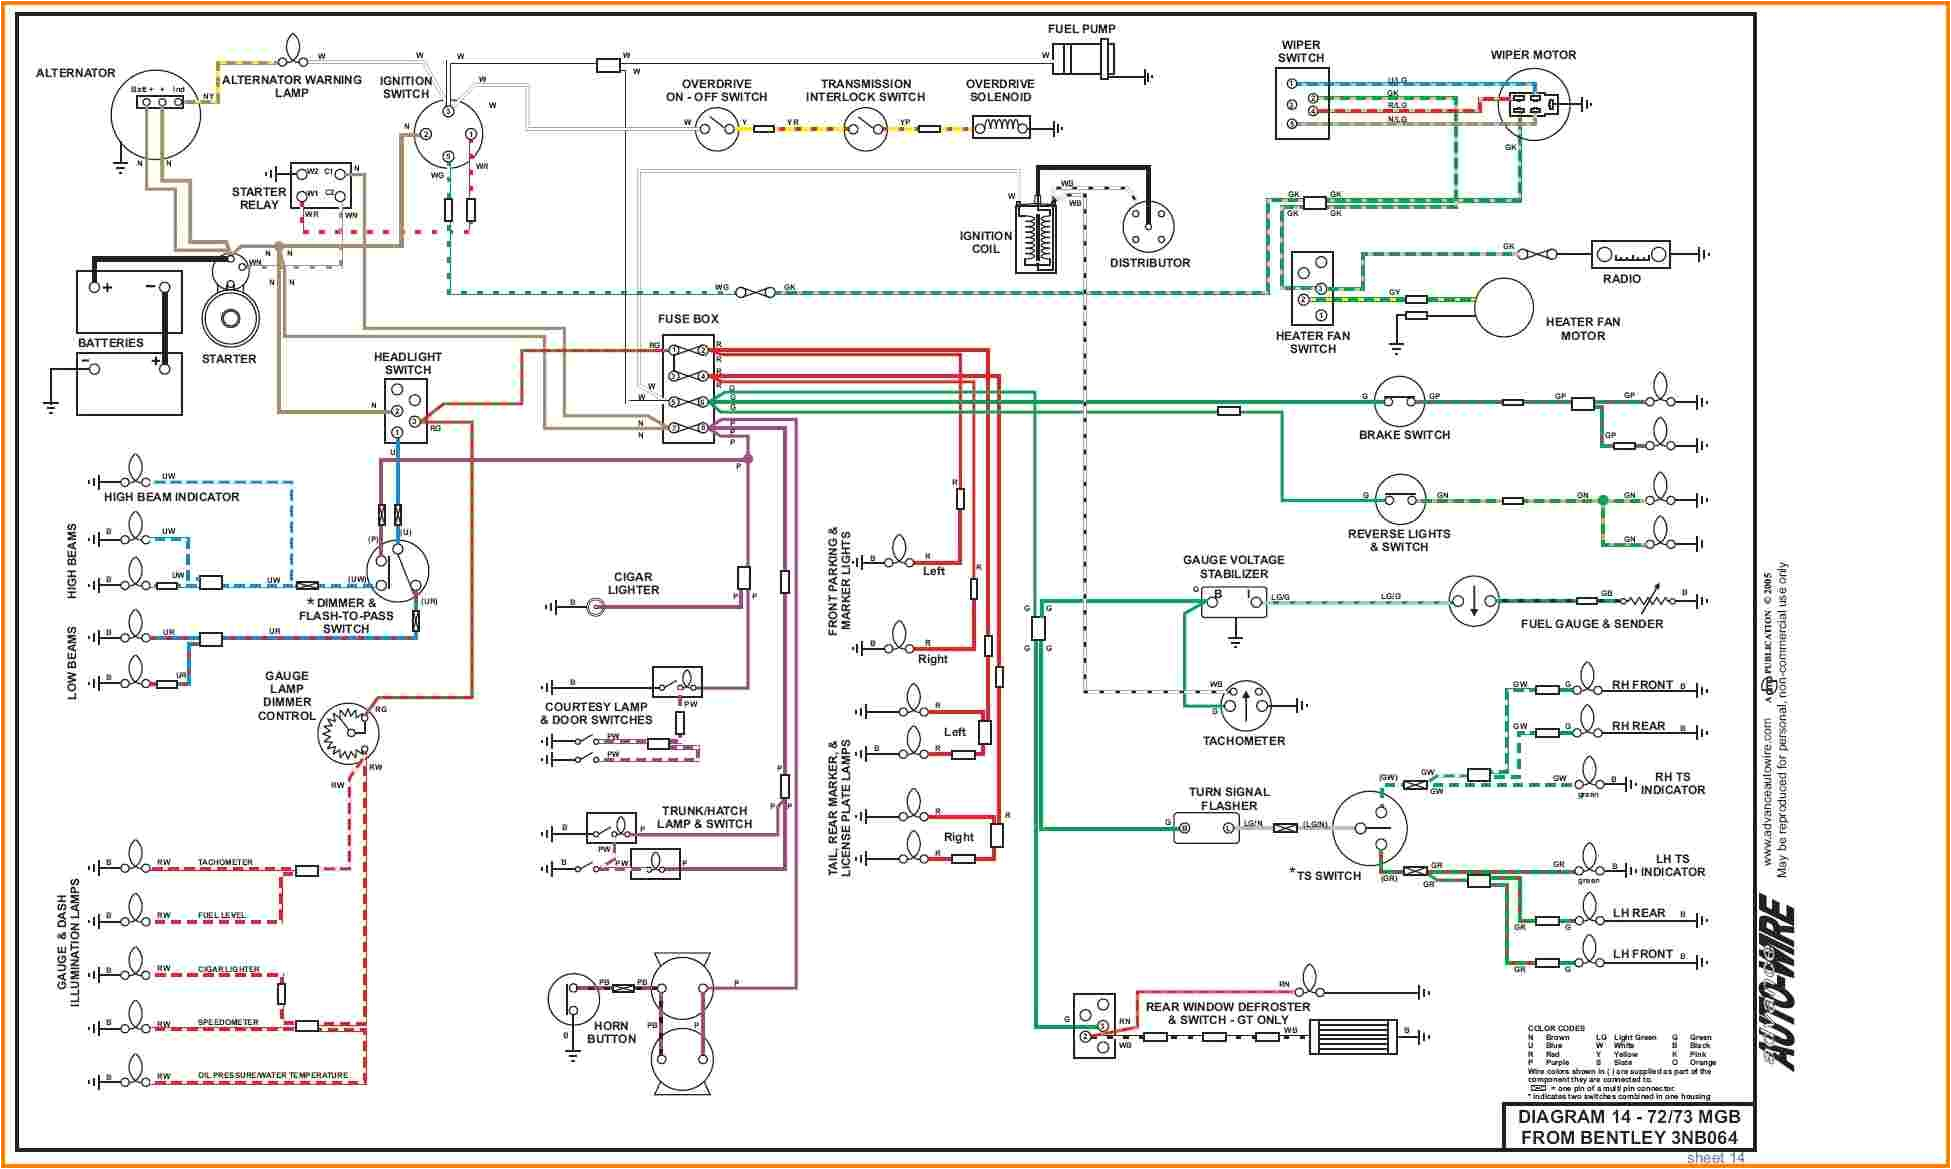 1978 mgb engine diagram wiring schematic wiring diagrams recent 1976 mgb engine diagram